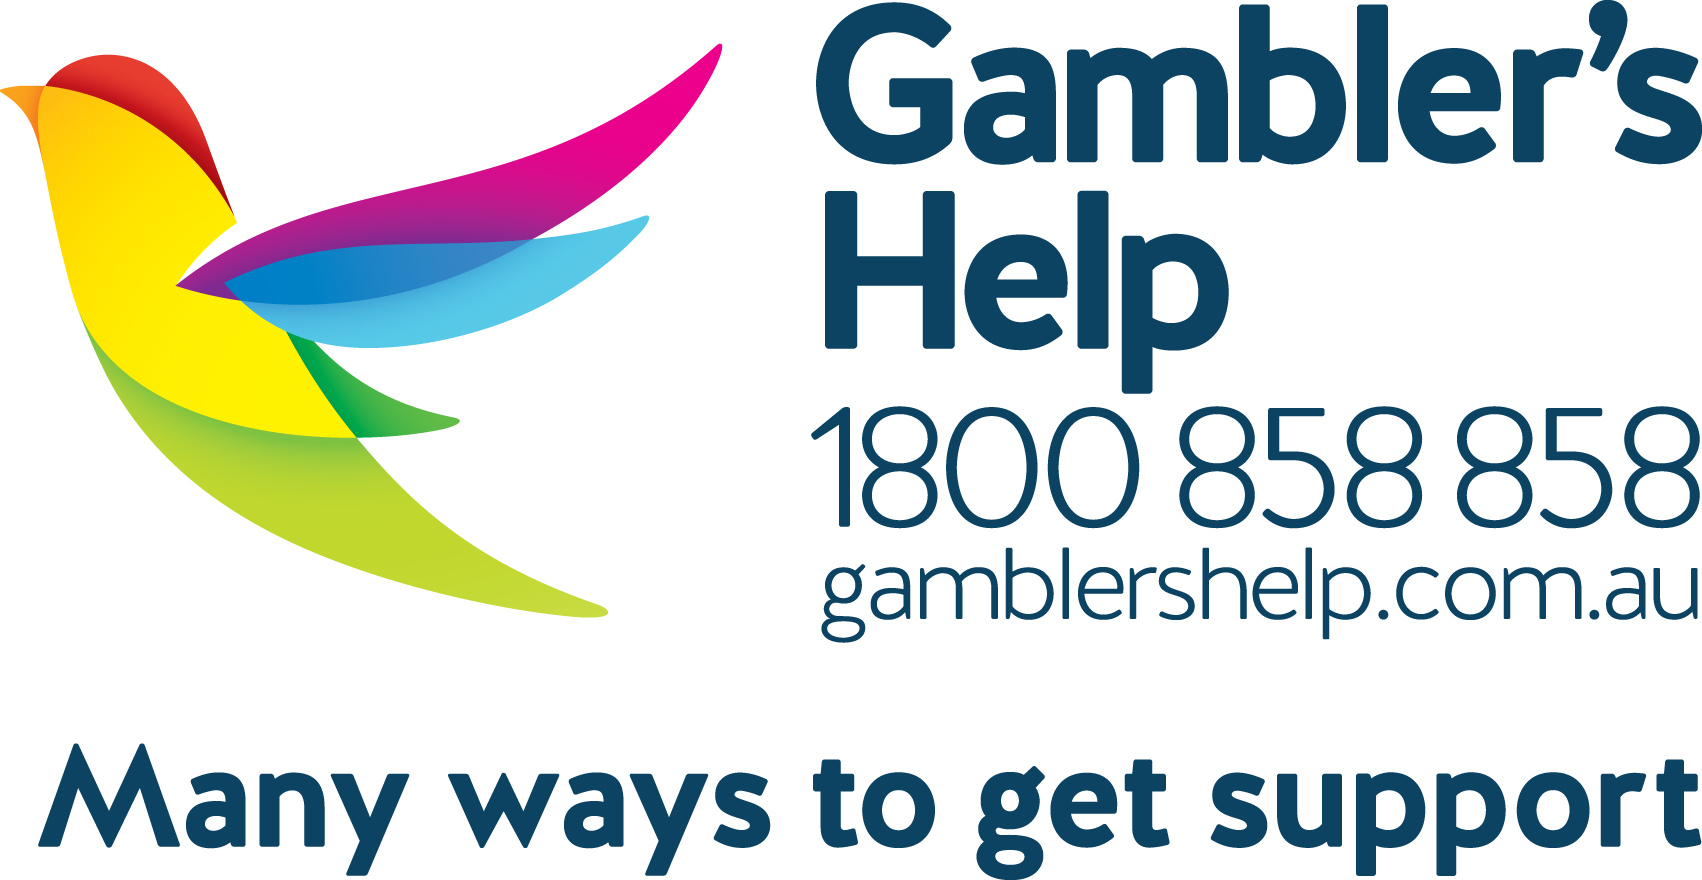 Gambler's Help - Phone 1800 858 858 for free support, 24/7